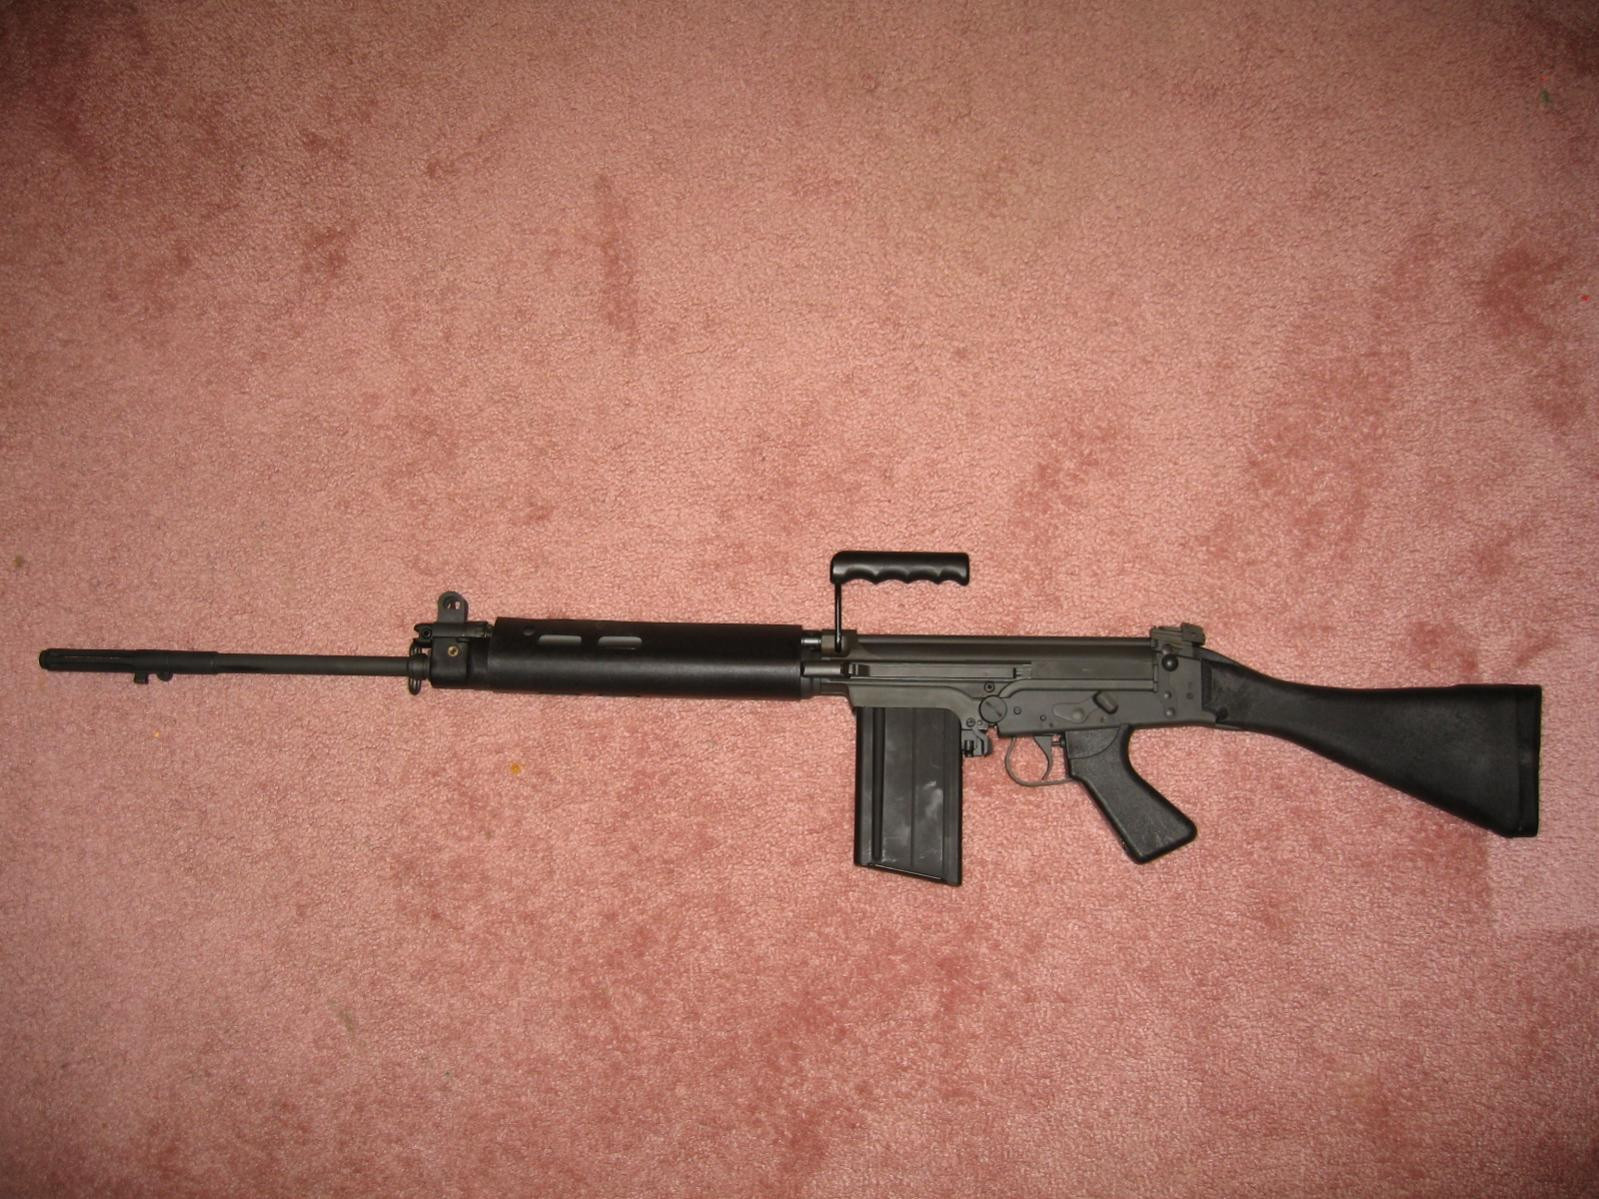 FAL L1A1 pic and question